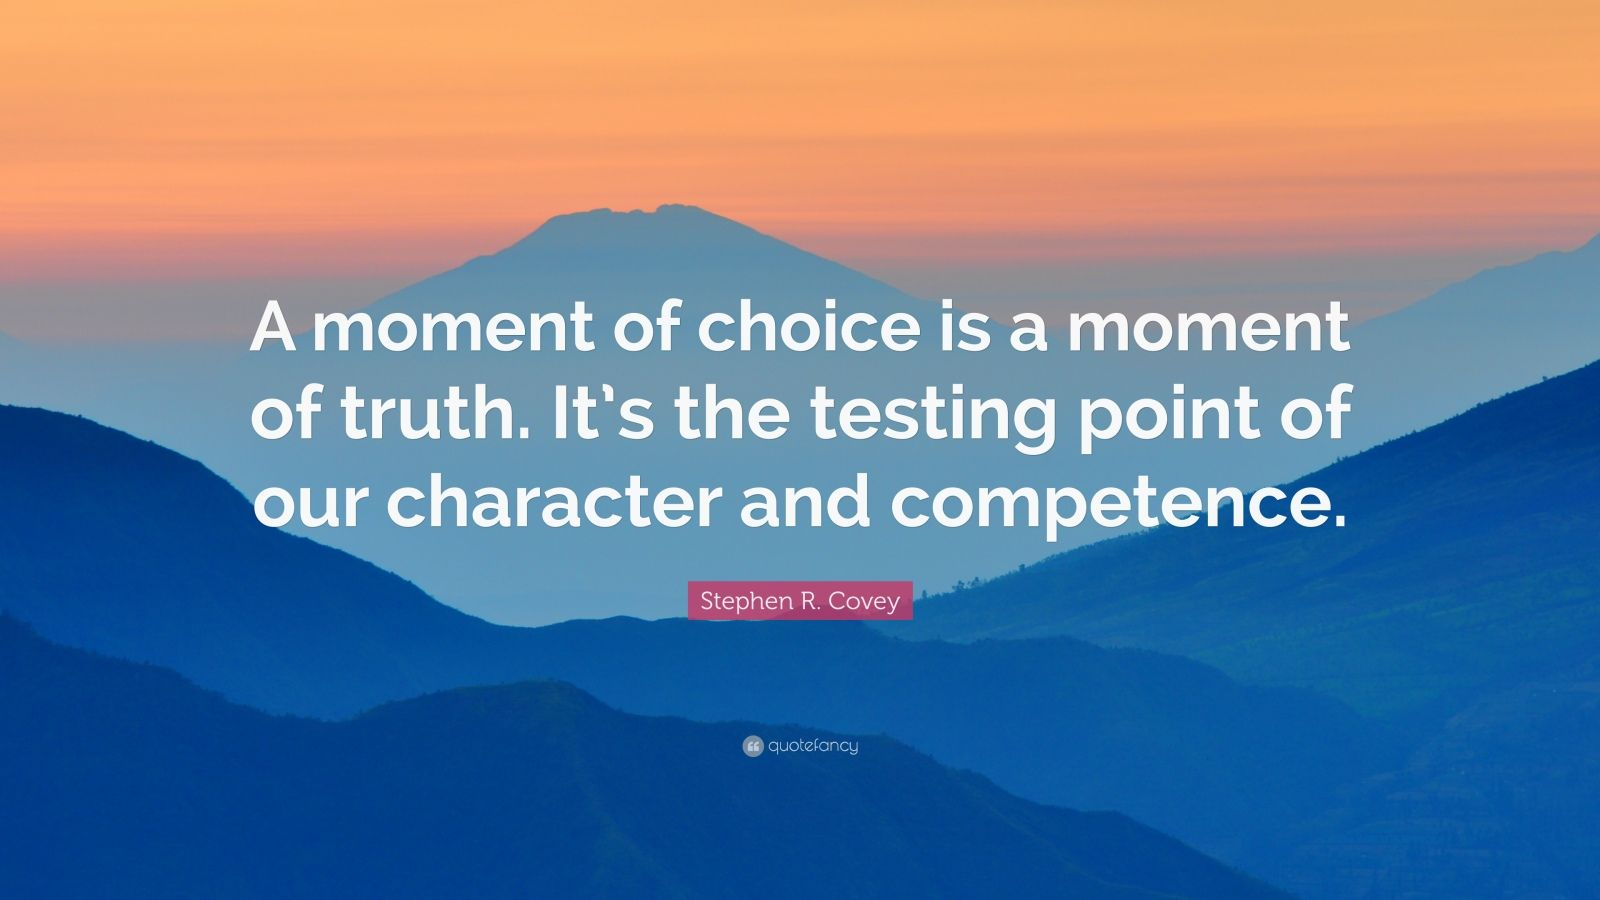 """Stephen R. Covey Quote: """"A moment of choice is a moment of truth. It's the testing point of our character and competence."""""""